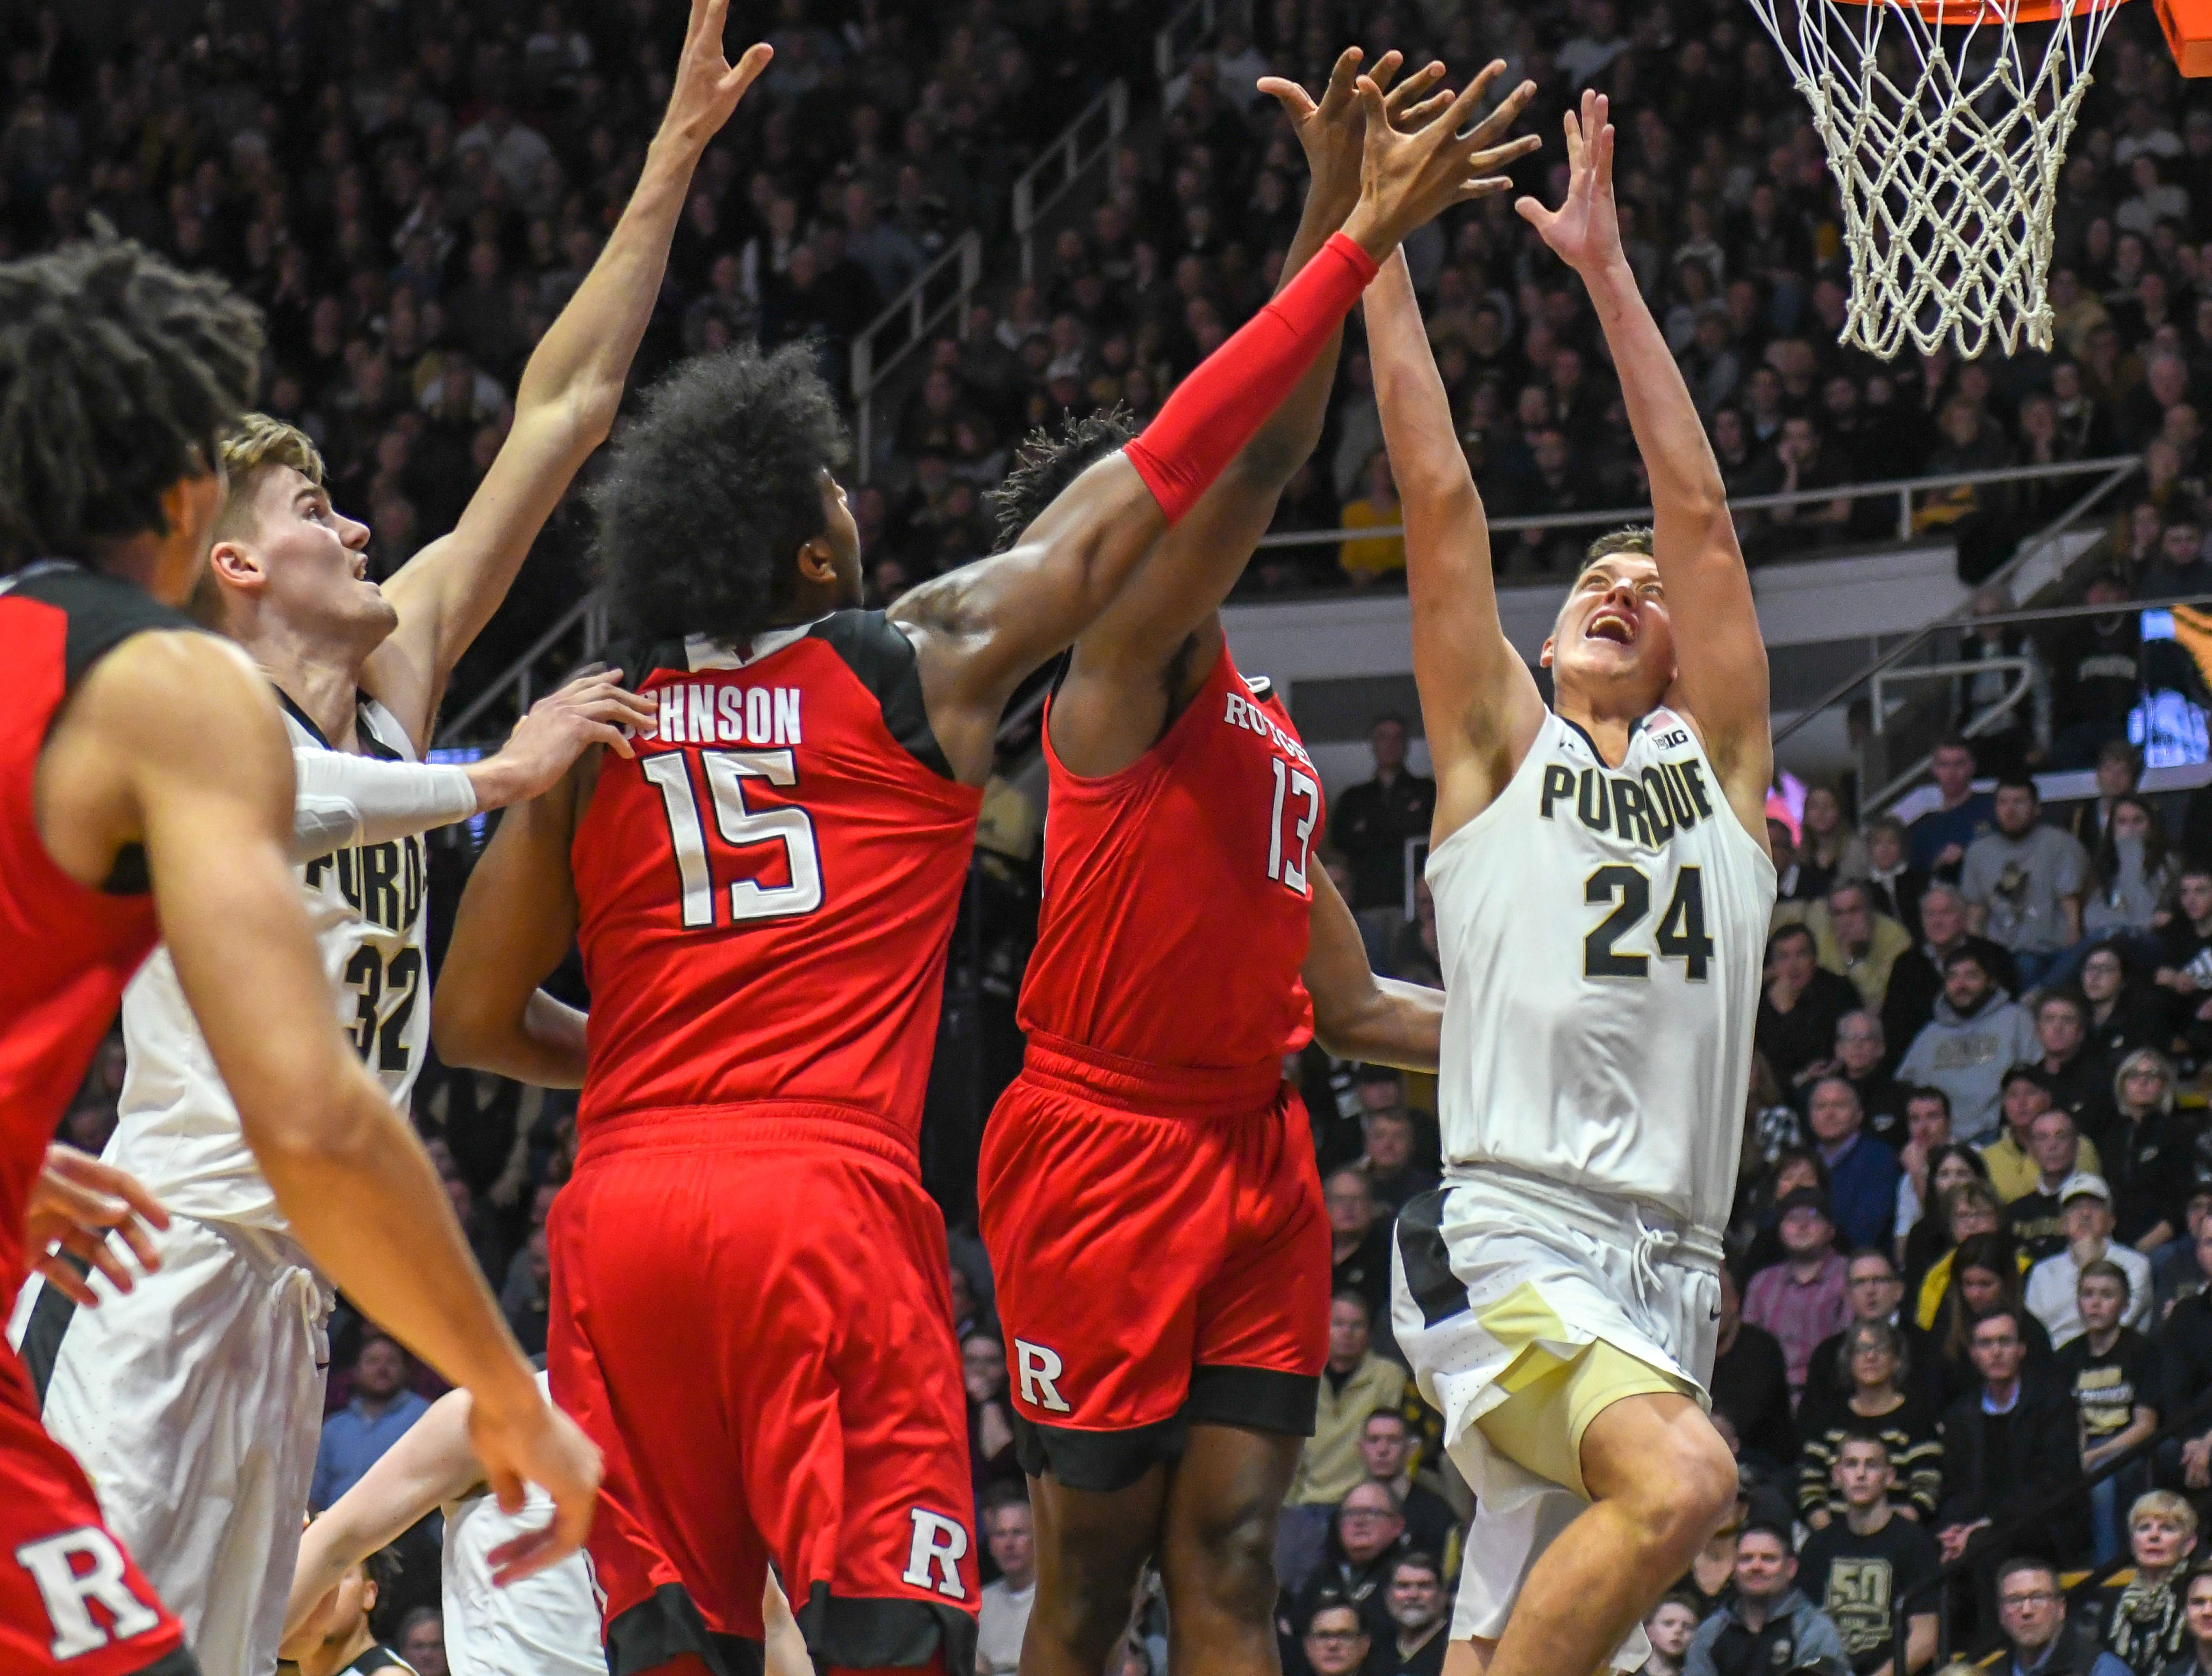 Action from Purdue's 89-54 win over Rutgers at Purdue University in West Lafayette on January 15, 2019. Grady Eifert